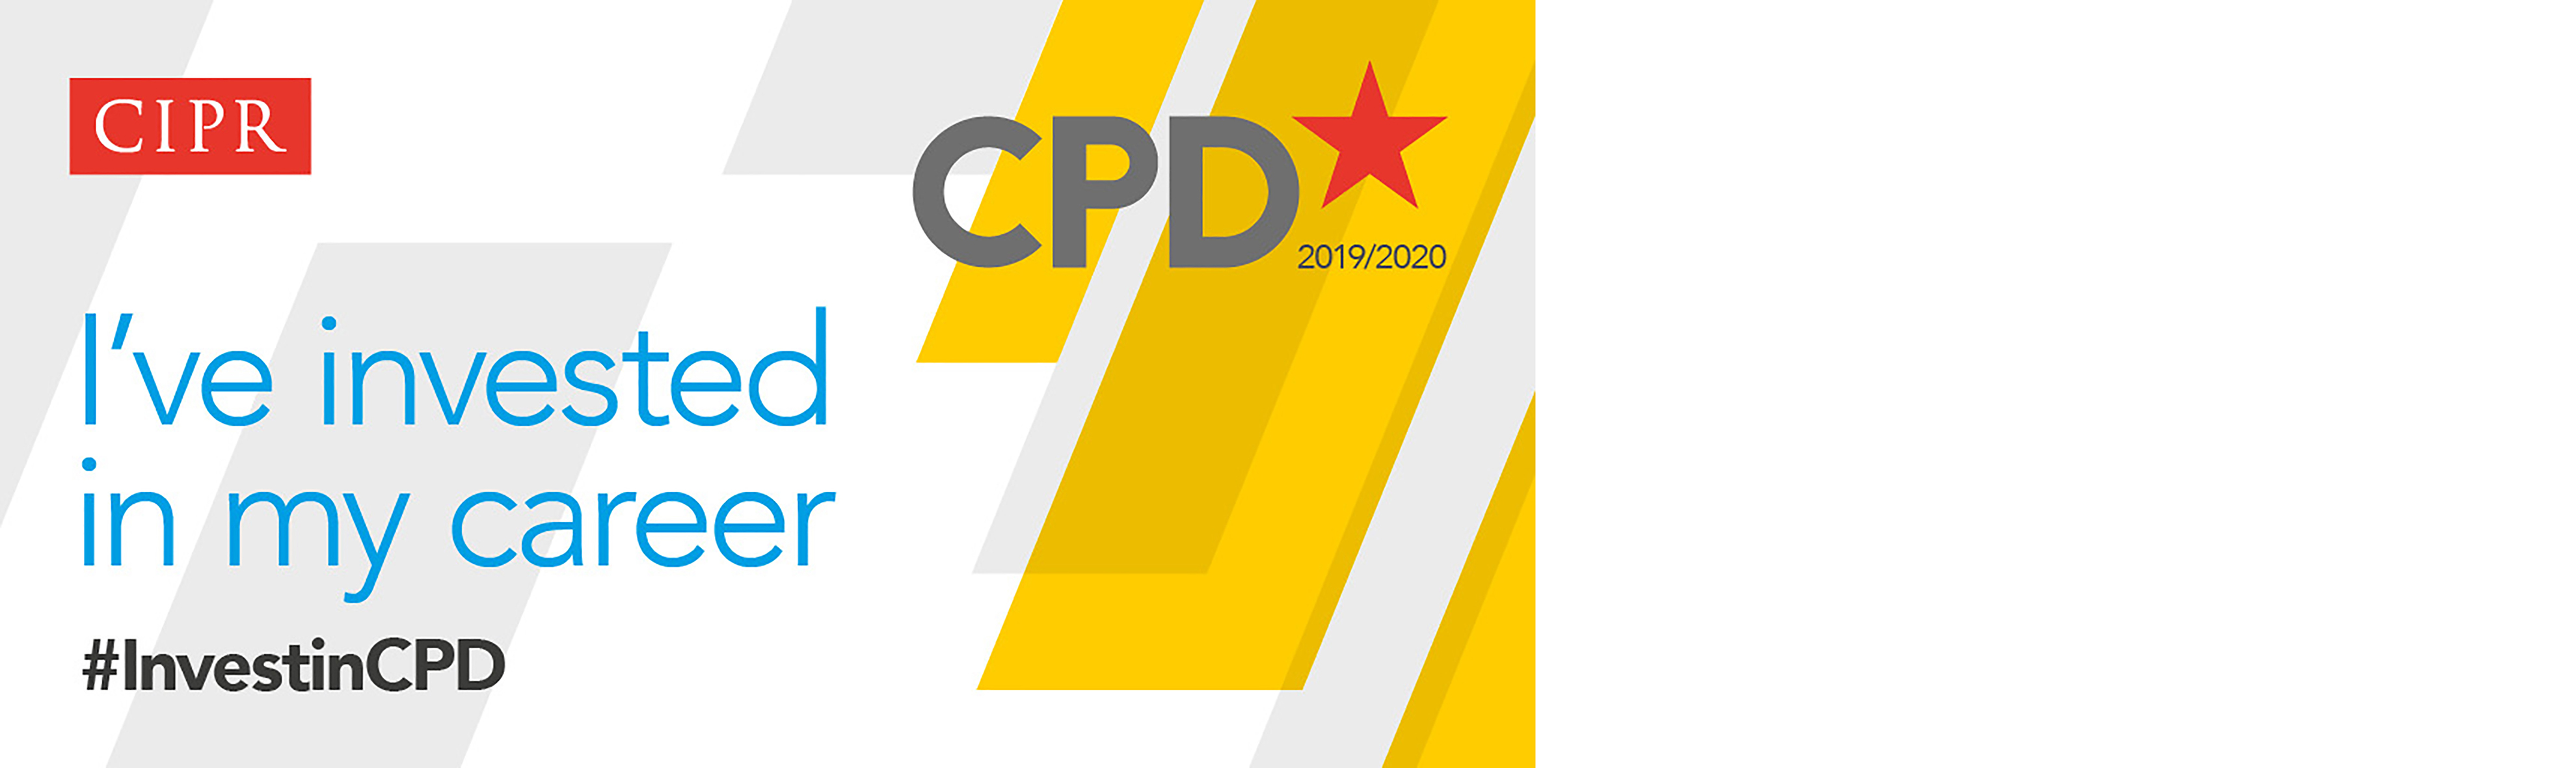 I've invested in my career. CIPR CPD logo